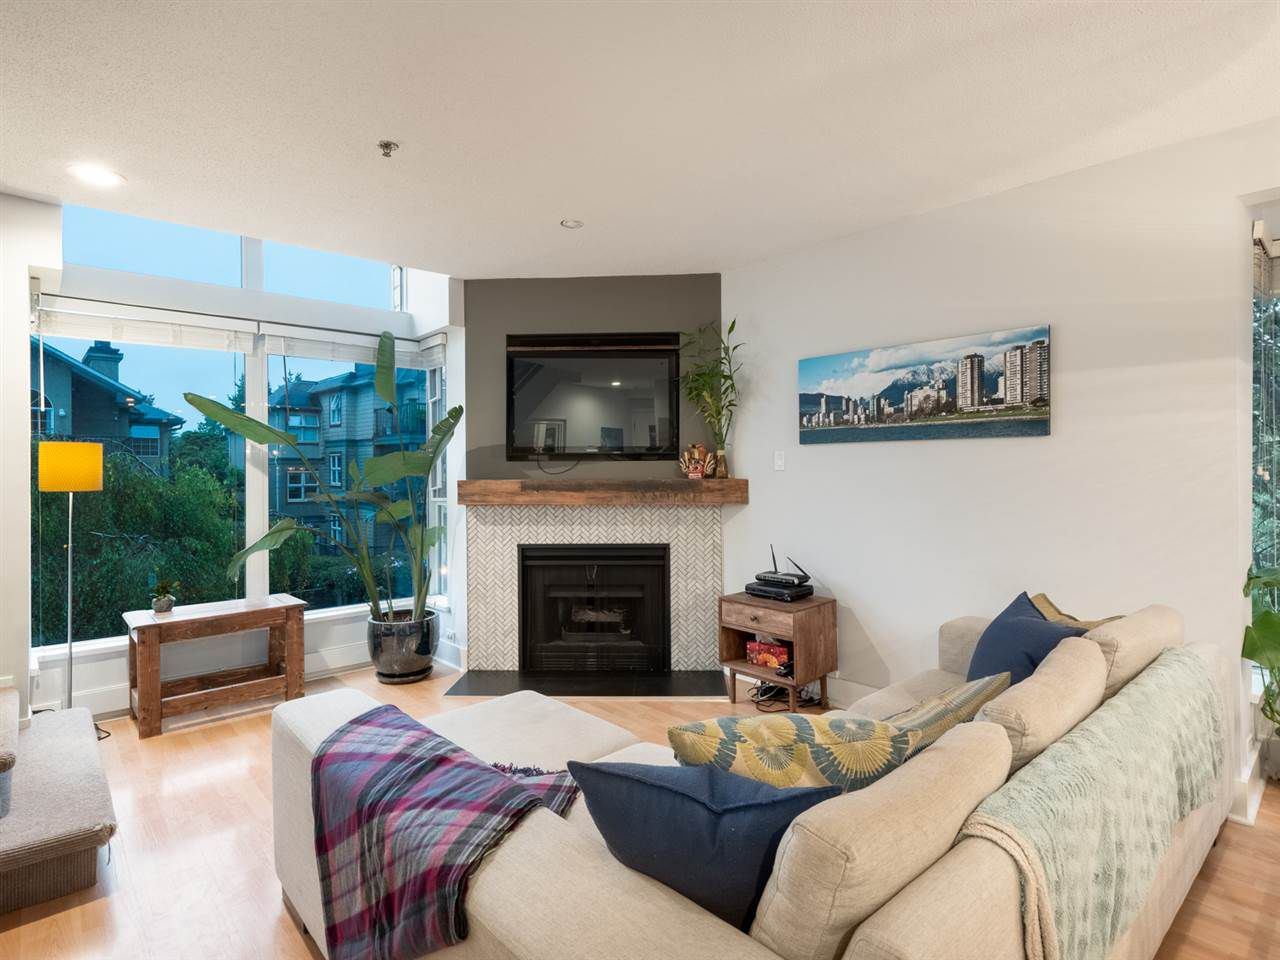 """Main Photo: 3037 LAUREL Street in Vancouver: Fairview VW Townhouse for sale in """"FAIRVIEW COURT"""" (Vancouver West)  : MLS®# R2321462"""